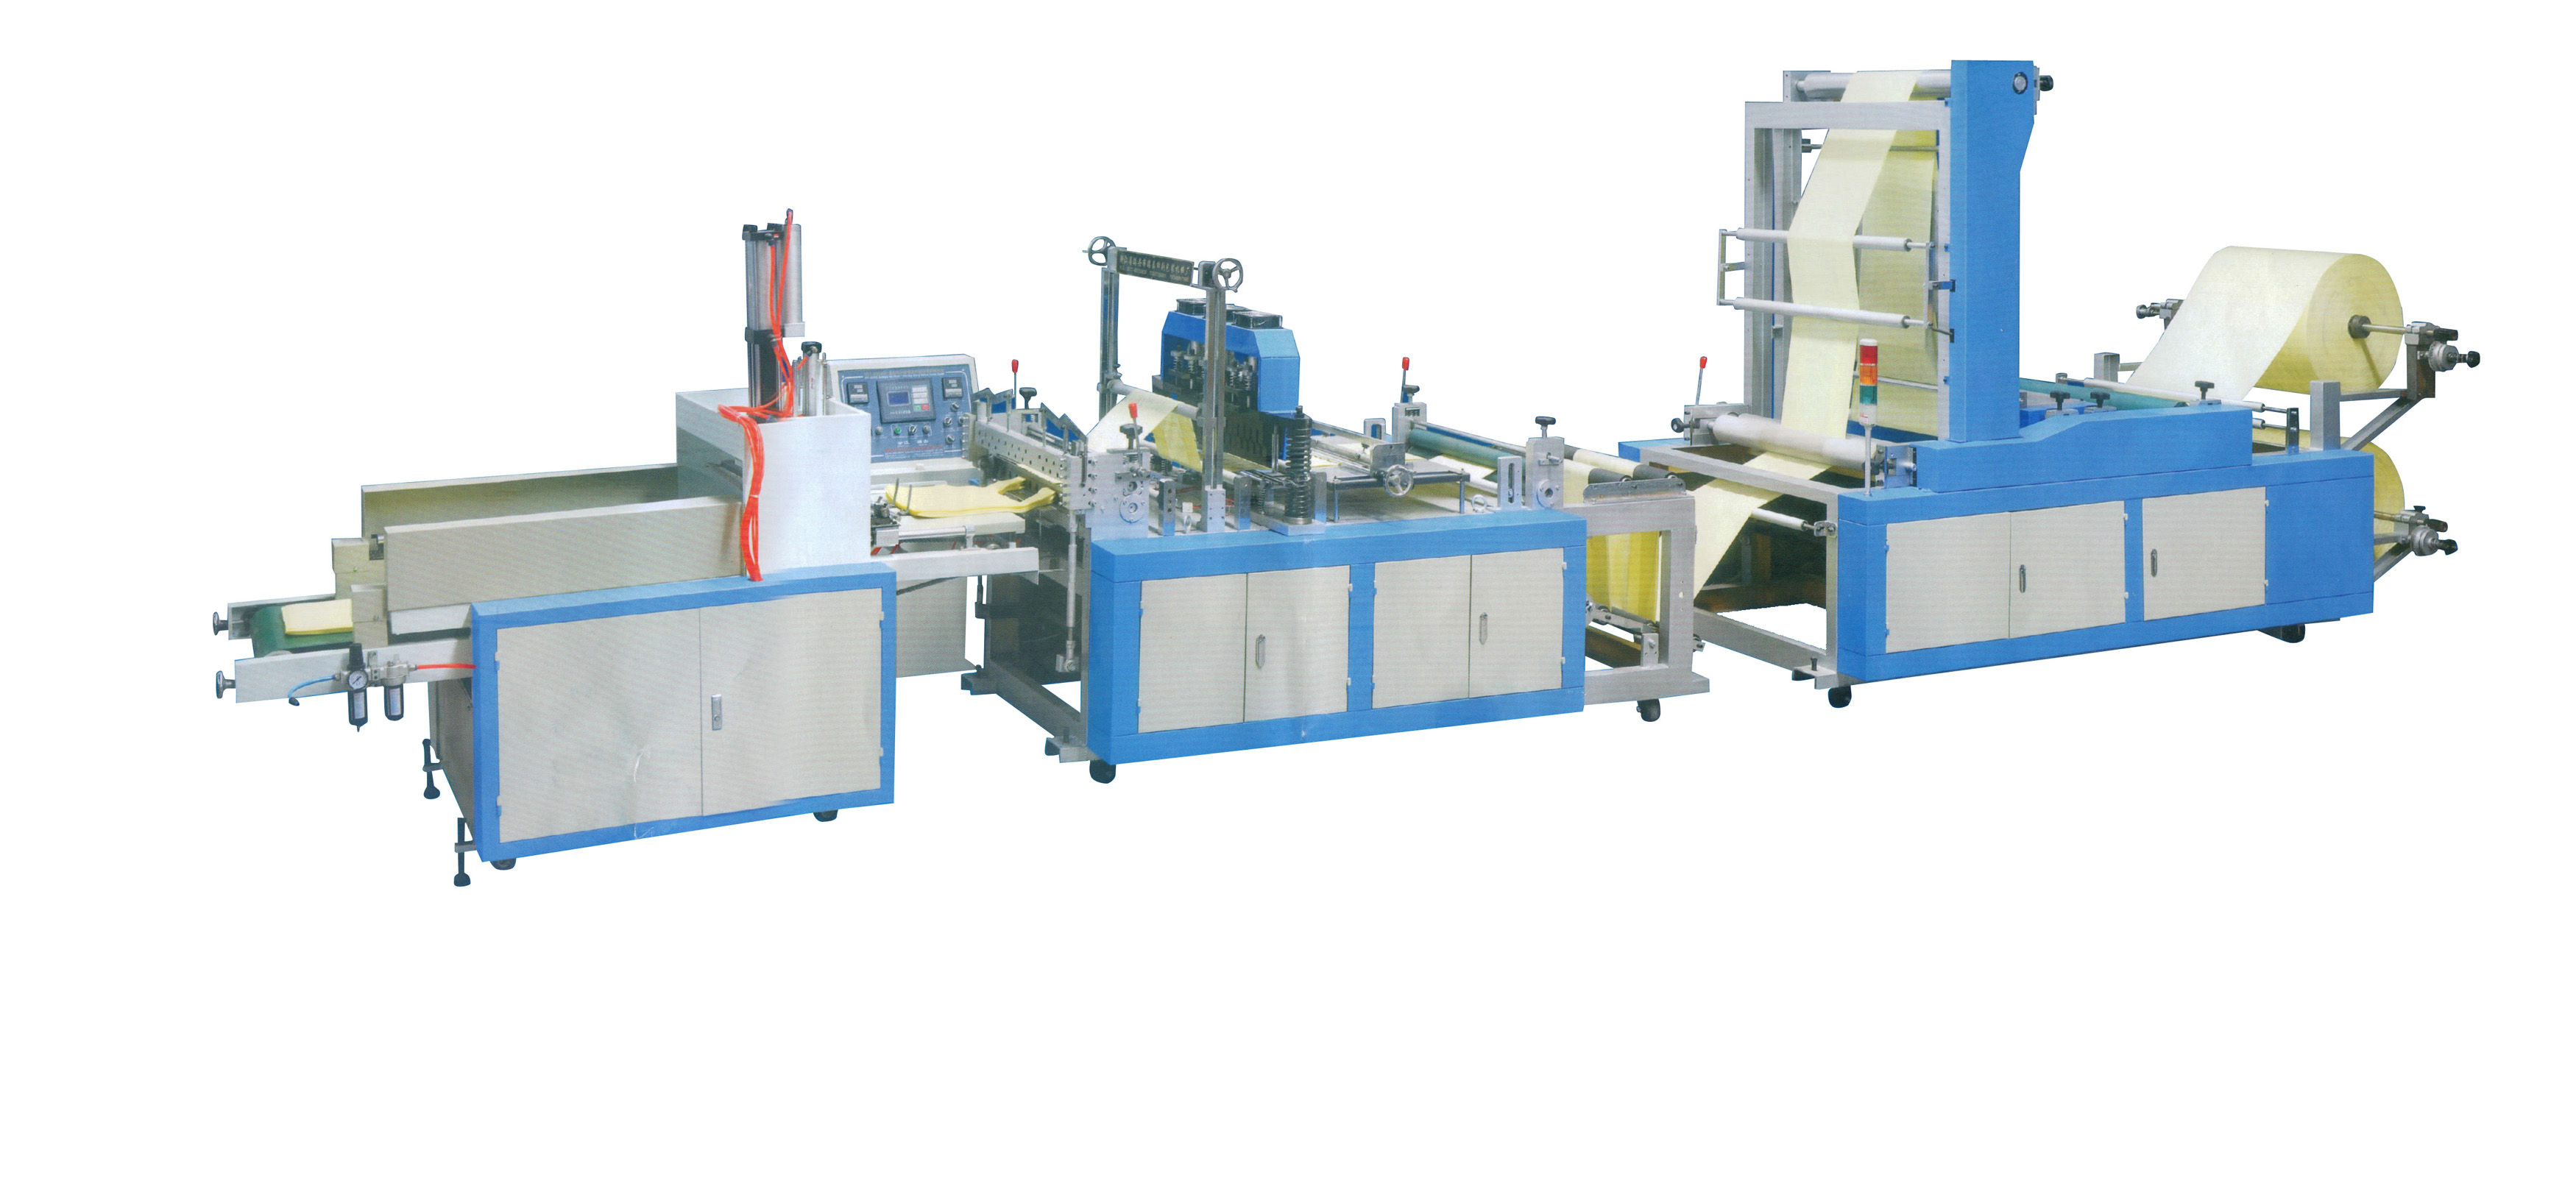 CYW-570 automatic non wowen fabrics bag making machine